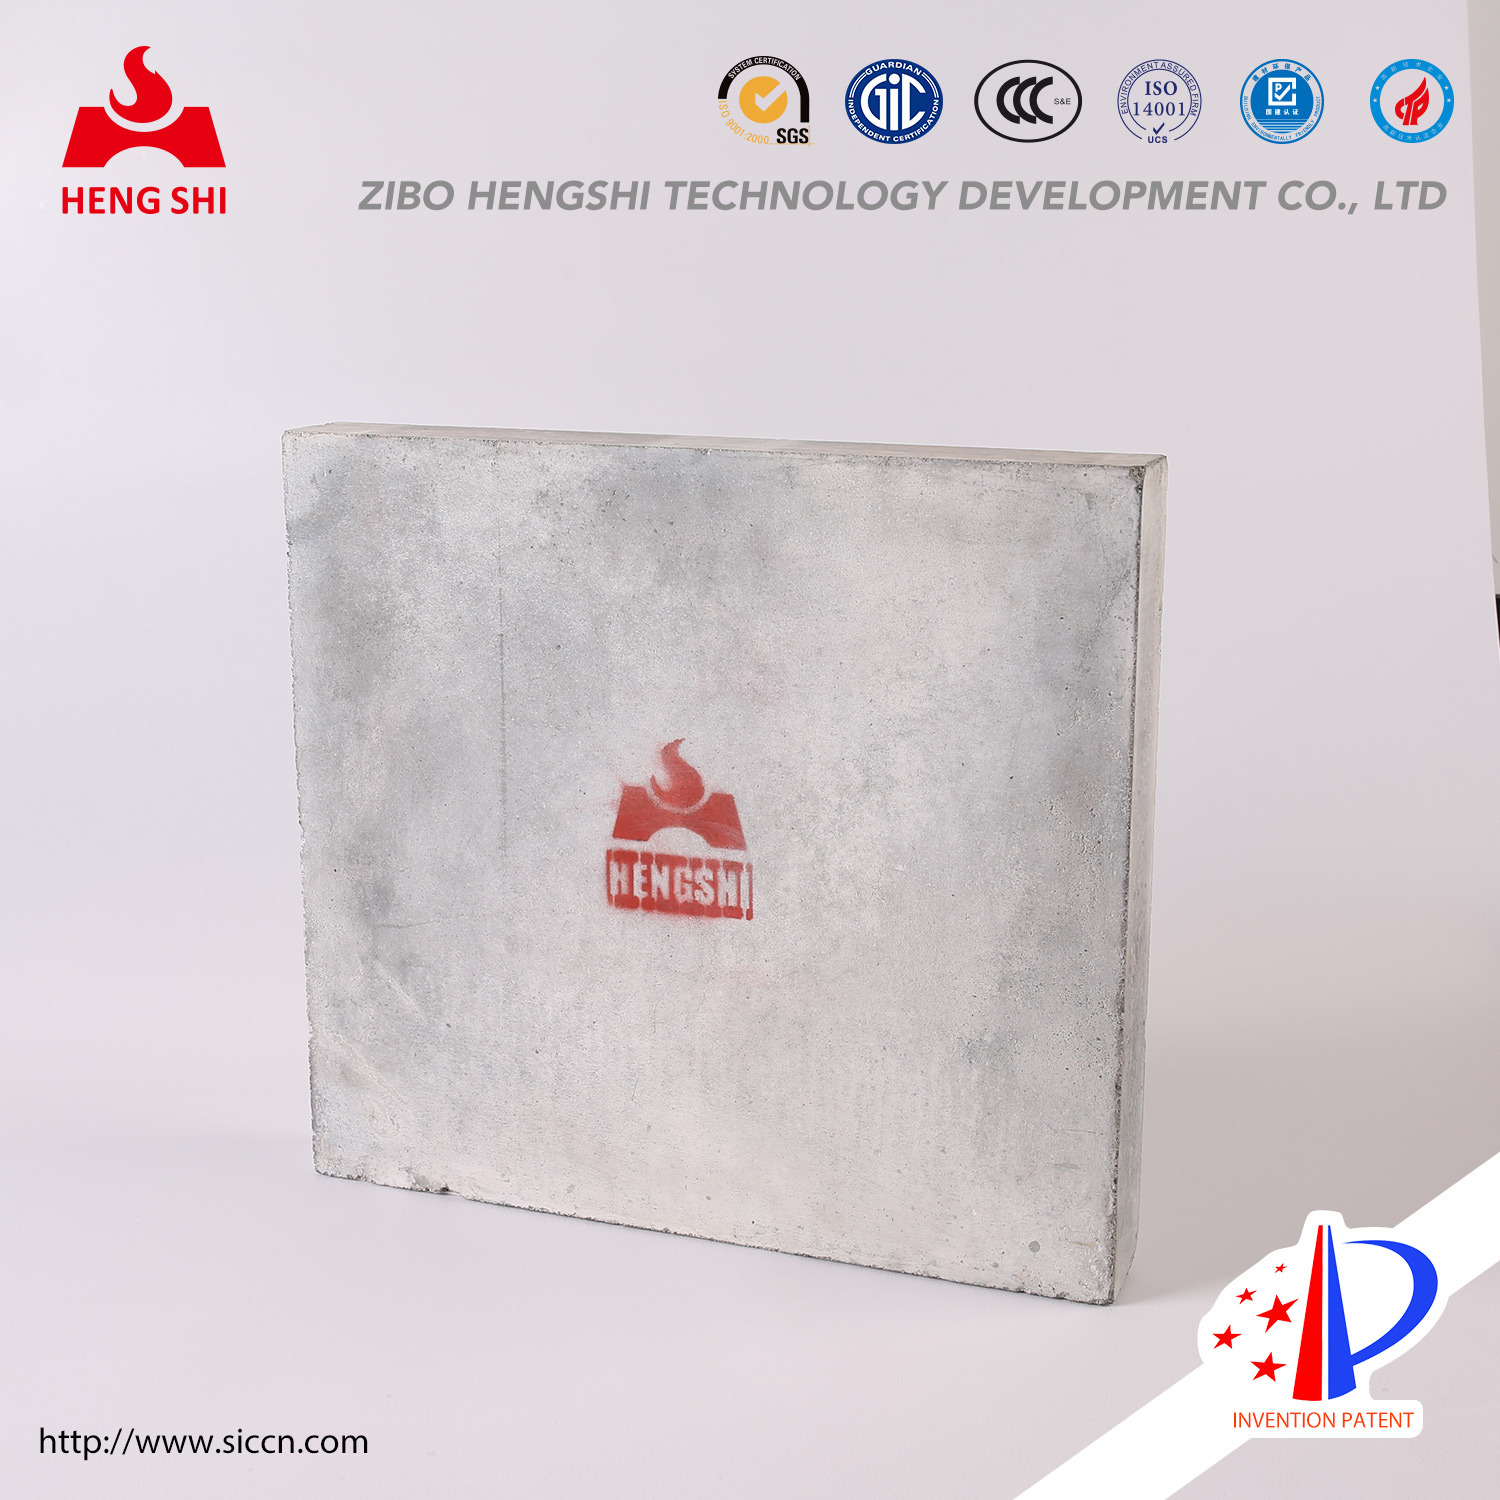 Si3n4 Bonded Sic Product Silicon Carbide Brick Ld-13